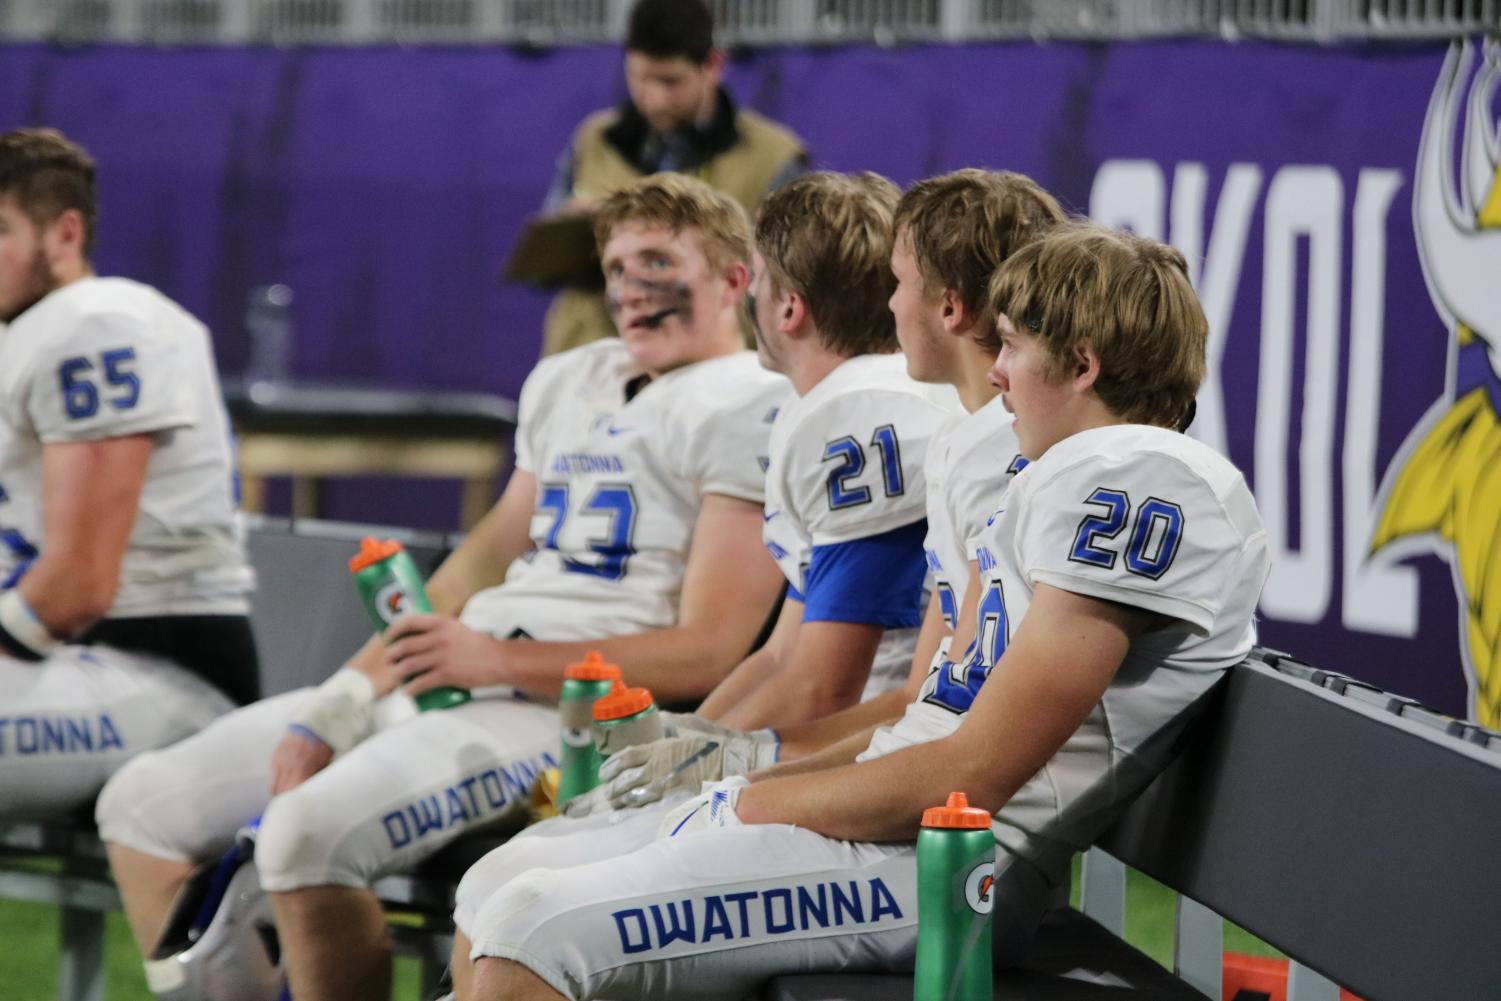 Players+of+the+Owatonna+defense+sit+and+wait+for+the+offense+to+score